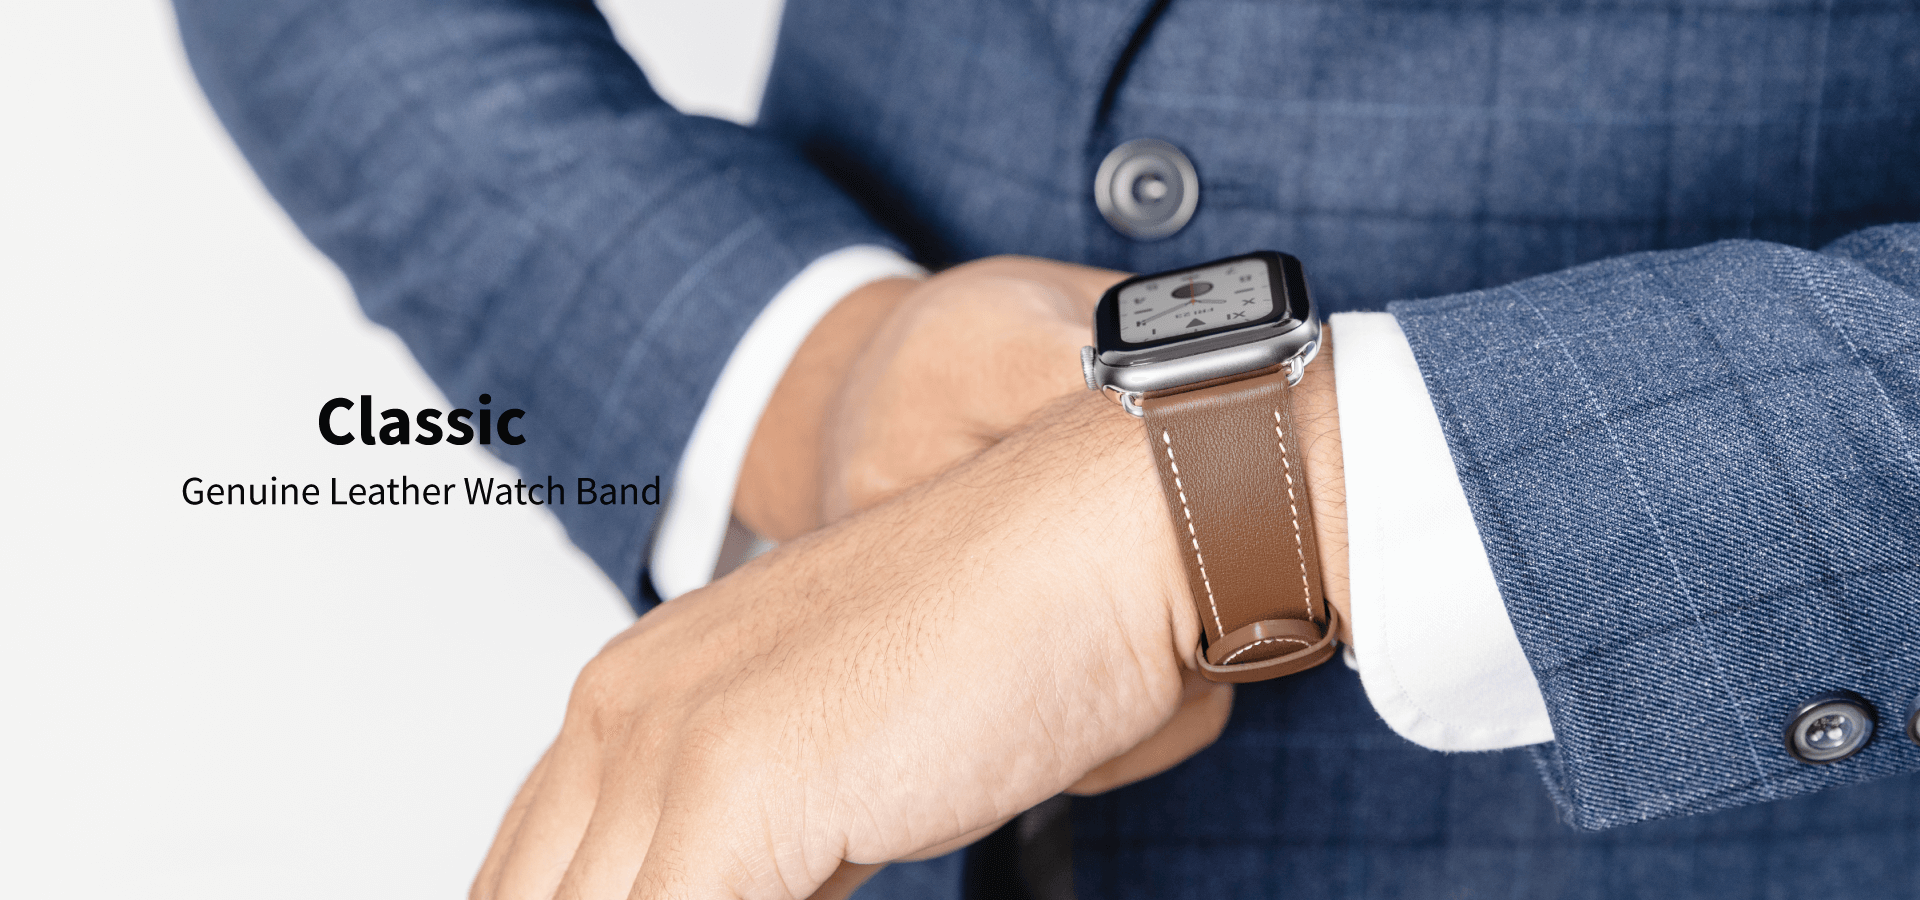 Classic Genuine Leather Watch Band